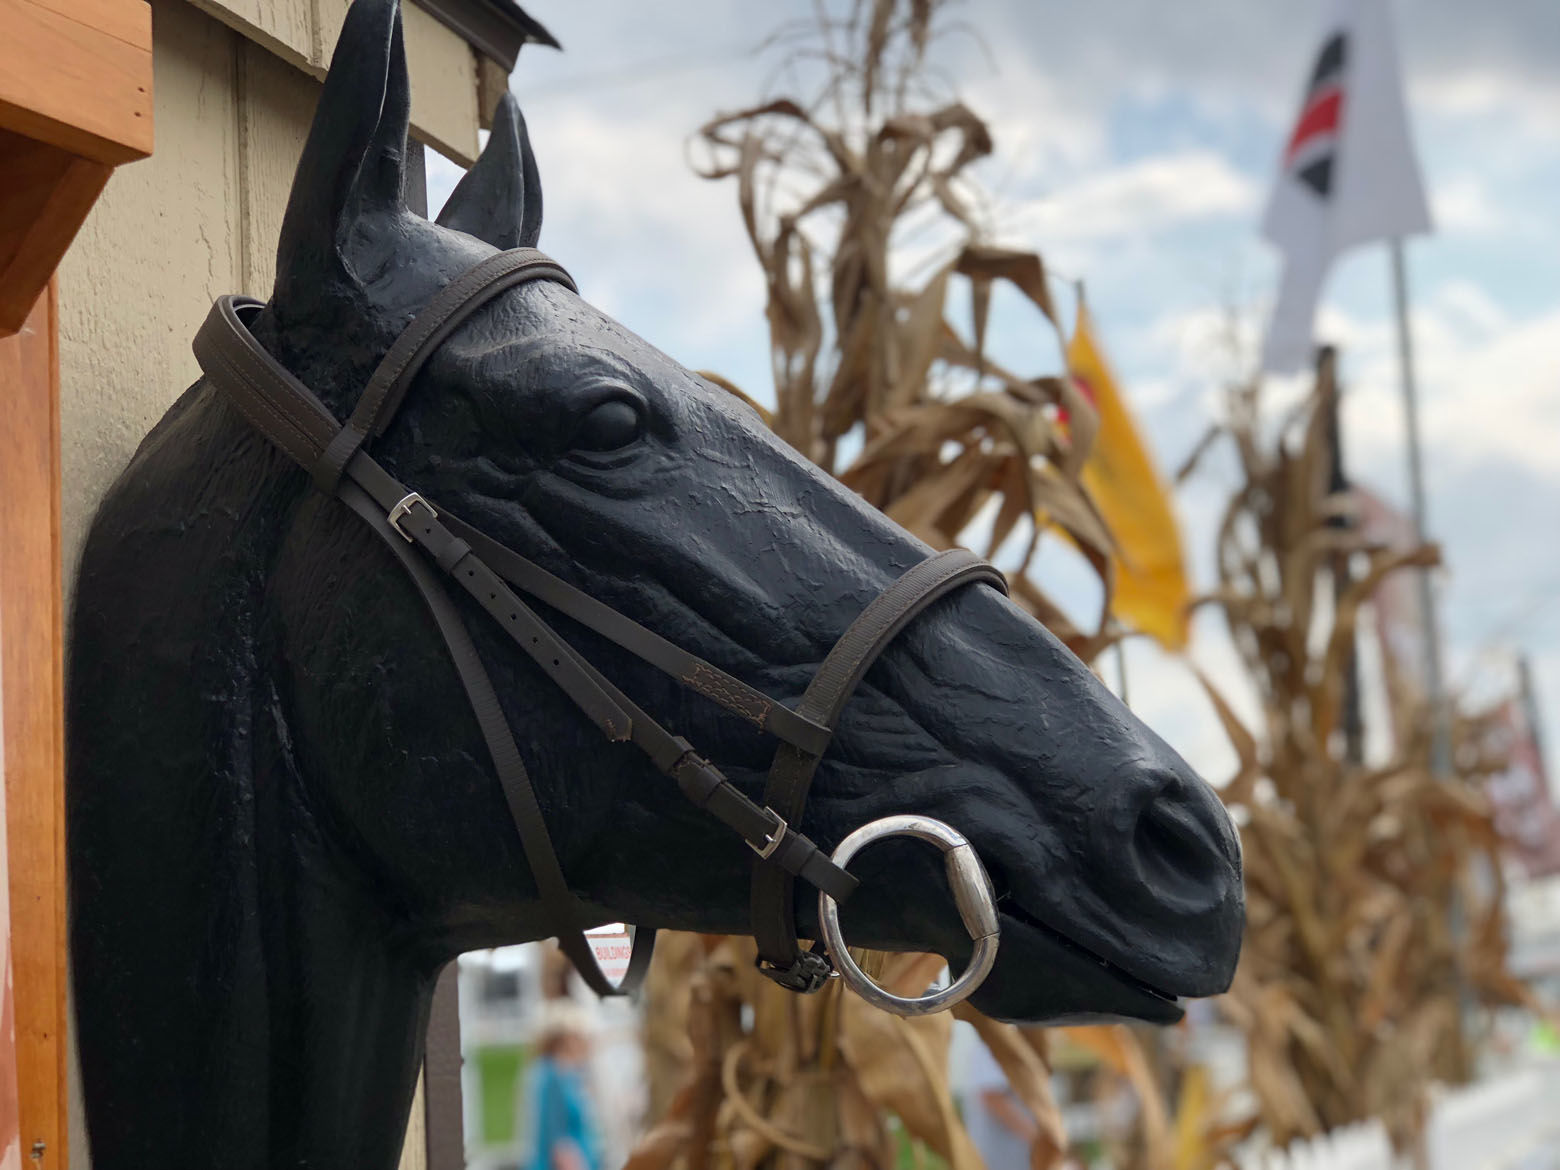 Detail of the equestrian display at the Great Frederick Fair. (WTOP/Kate Ryan)